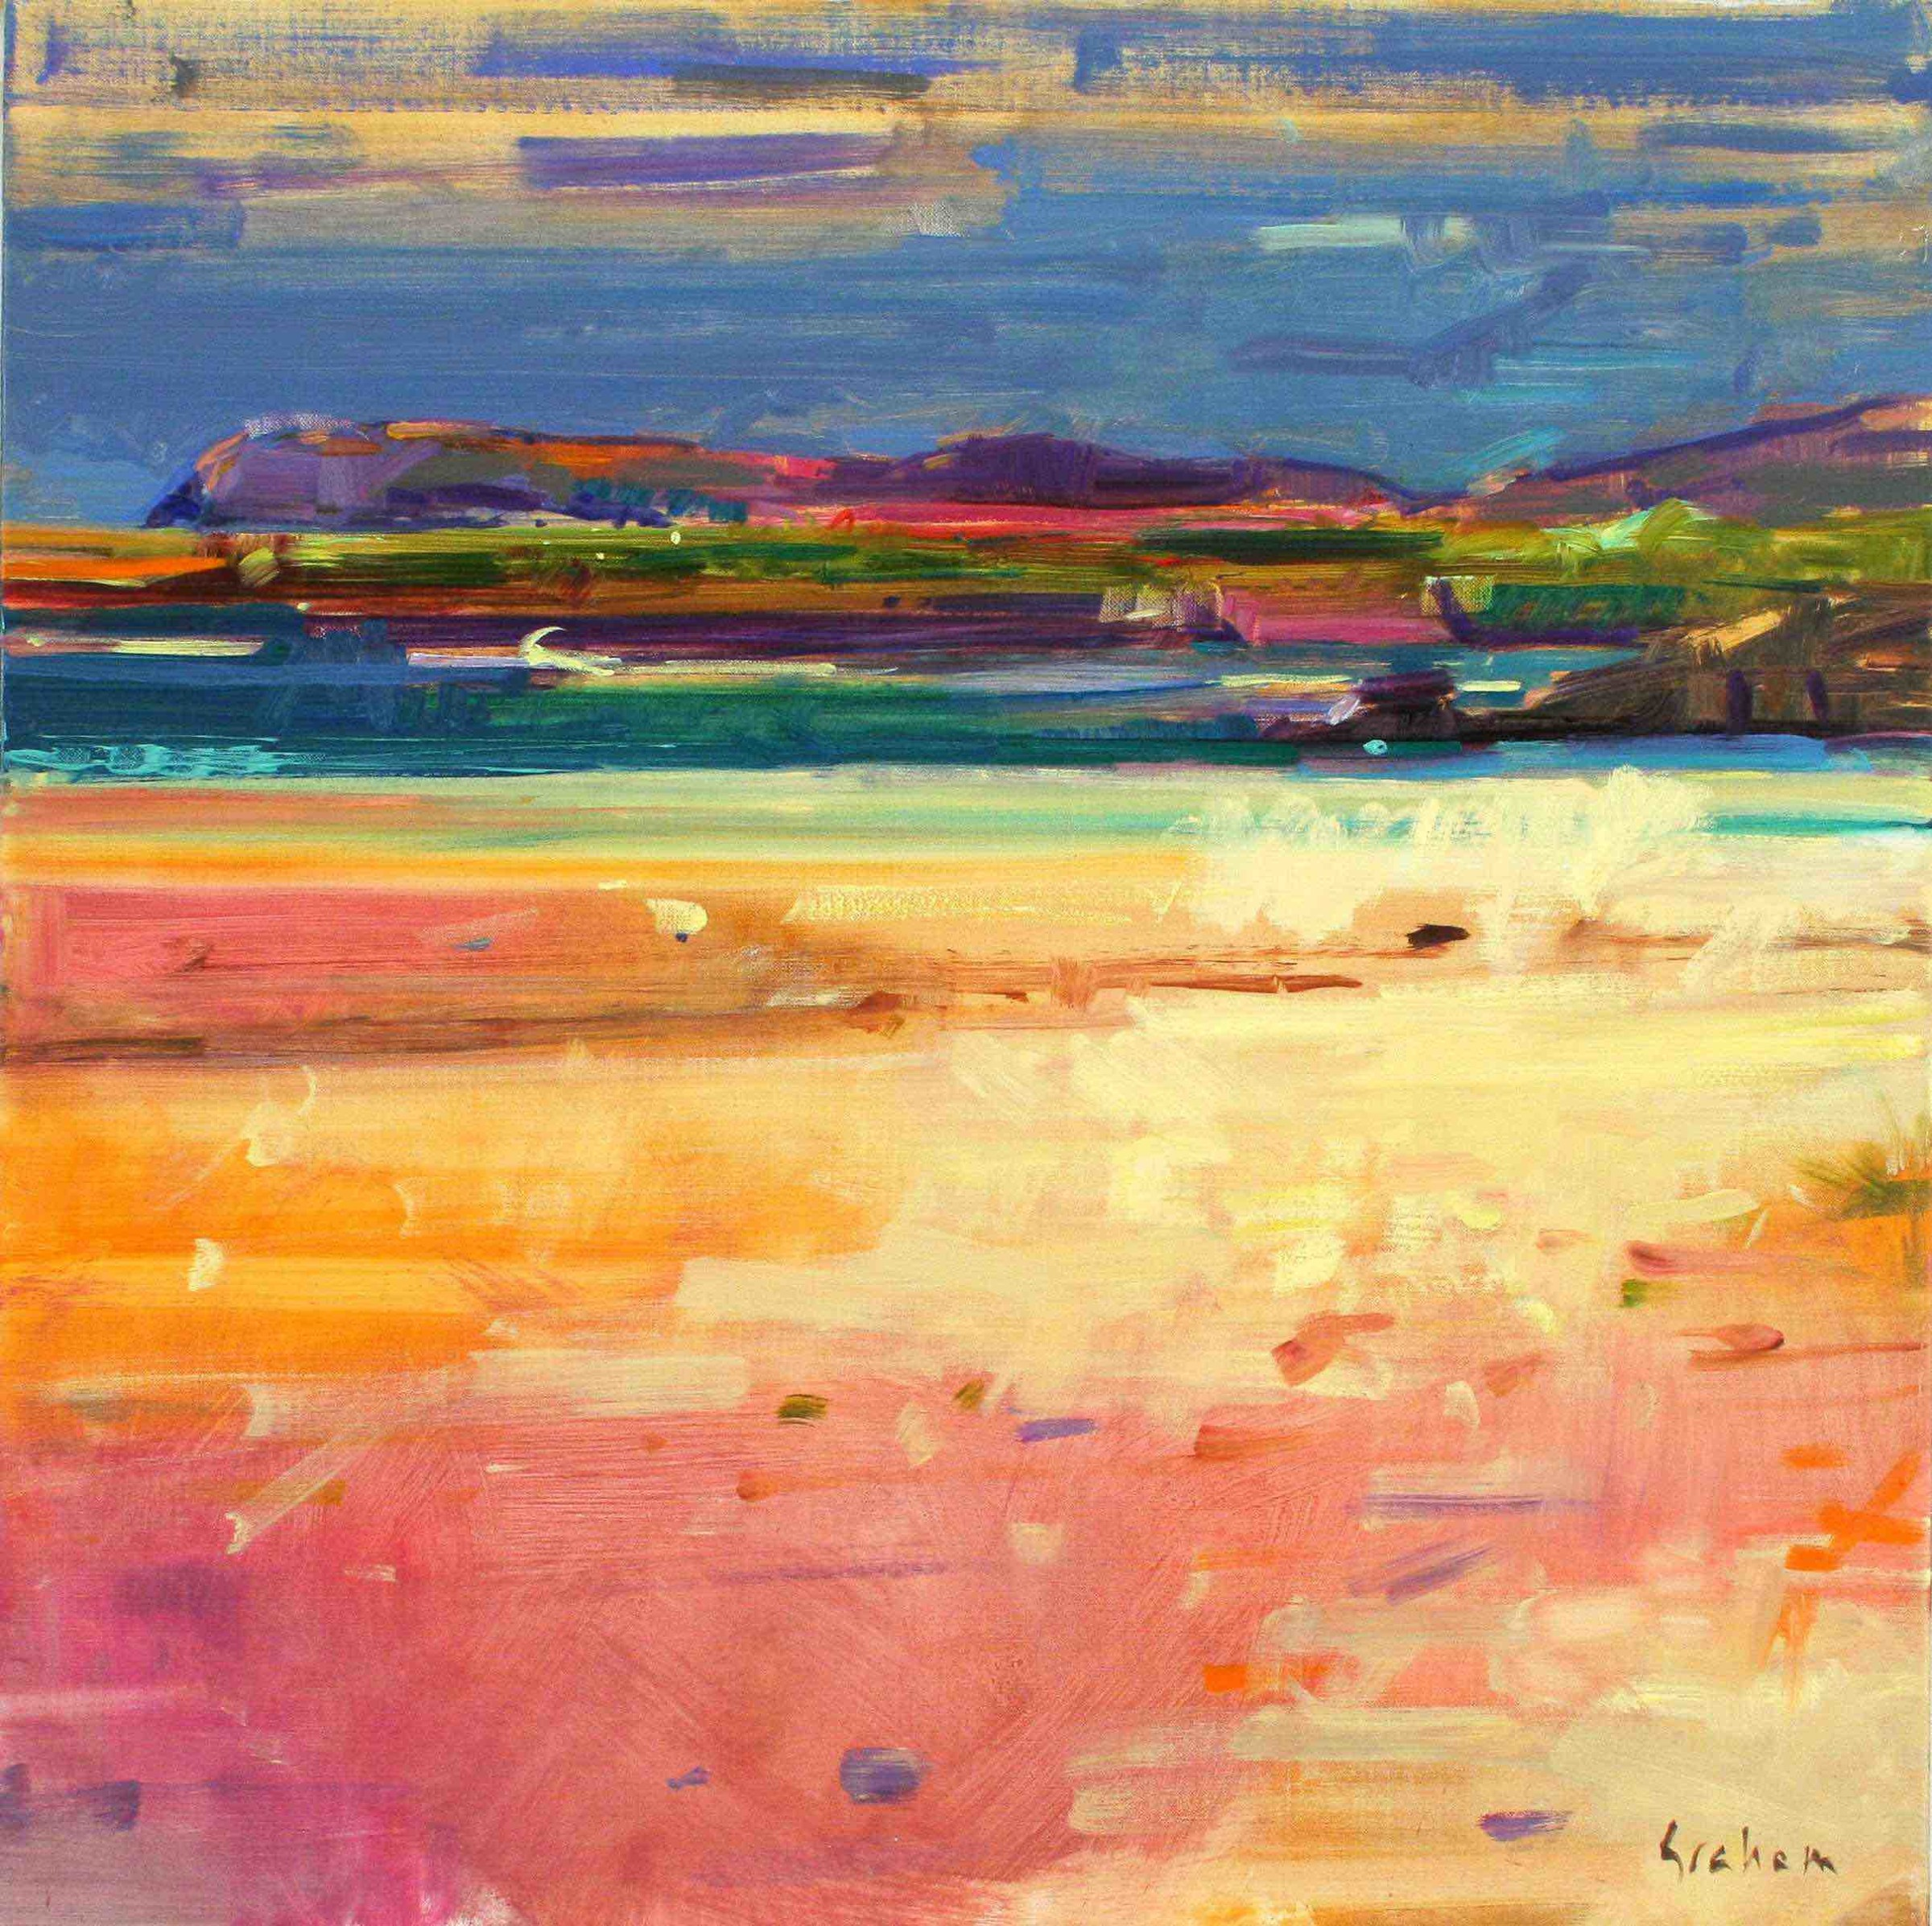 "<span class=""link fancybox-details-link""><a href=""/artists/31-peter-graham-roi/works/2344-peter-graham-roi-barra-outer-hebrides/"">View Detail Page</a></span><div class=""artist""><strong>Peter Graham ROI</strong></div> <div class=""title""><em>Barra, Outer Hebrides</em></div> <div class=""medium"">65 x 65 cm </div> <div class=""dimensions"">Oil on Canvas</div><div class=""copyright_line"">Copyright The Artist</div>"